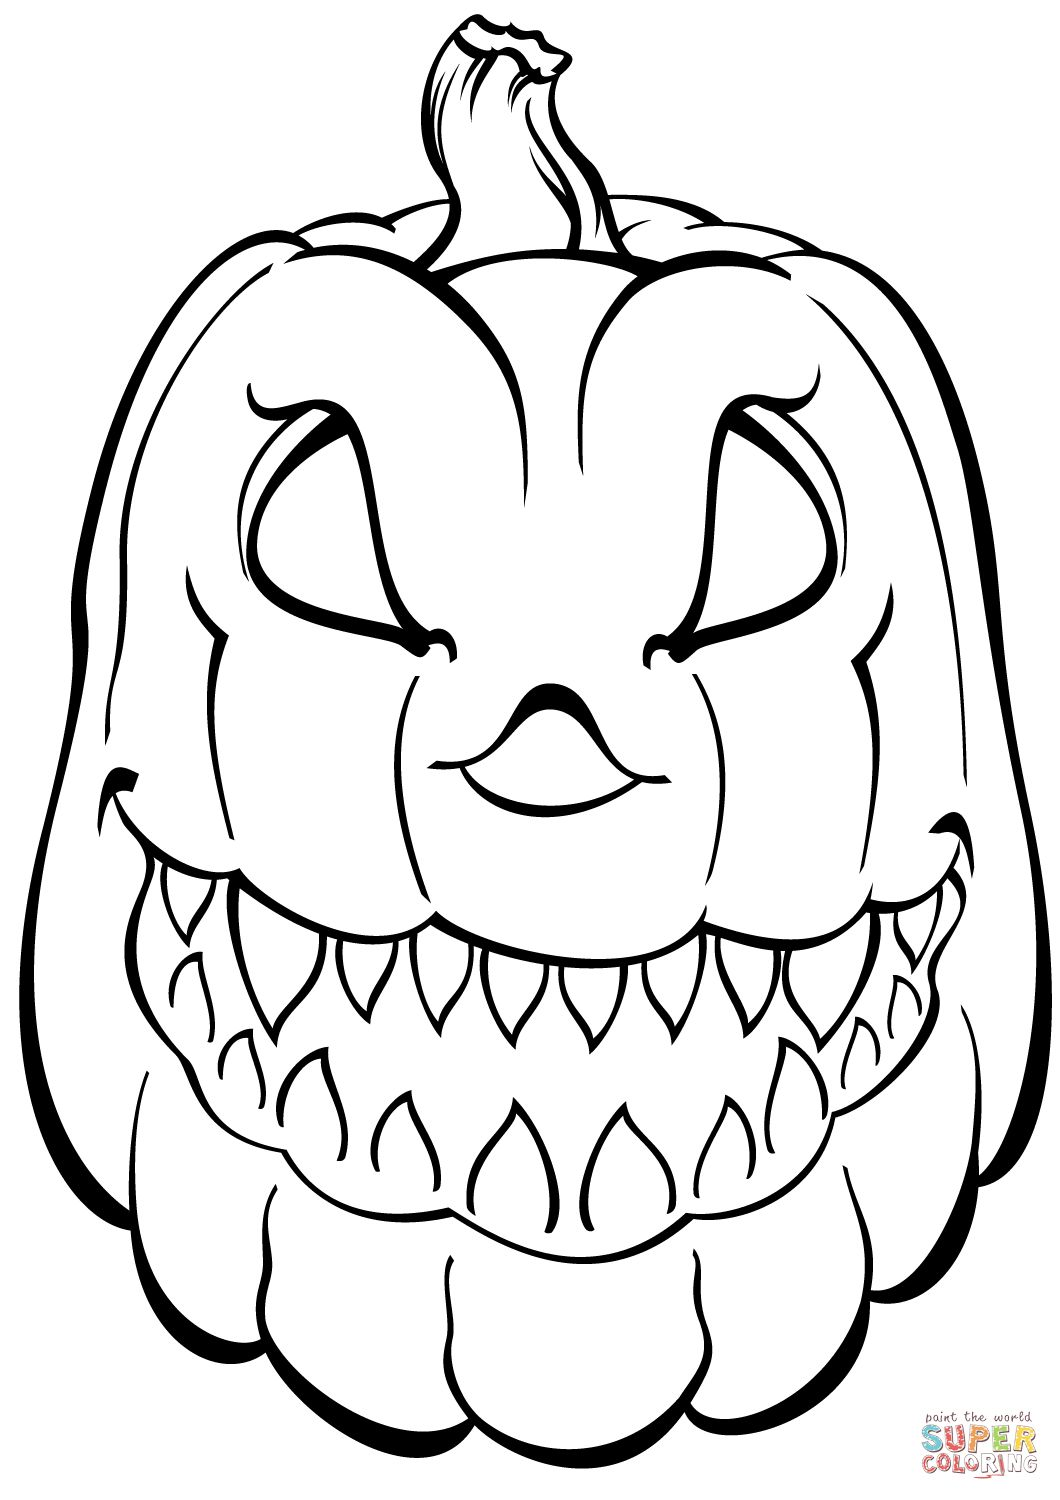 Free Printable Pumpkin Coloring Pages Scary Pumpkin Coloring Page Free Printable Coloring Pages Entitlementtrap Com Pumpkin Coloring Pages Halloween Pumpkin Coloring Pages Halloween Coloring Pages Printable